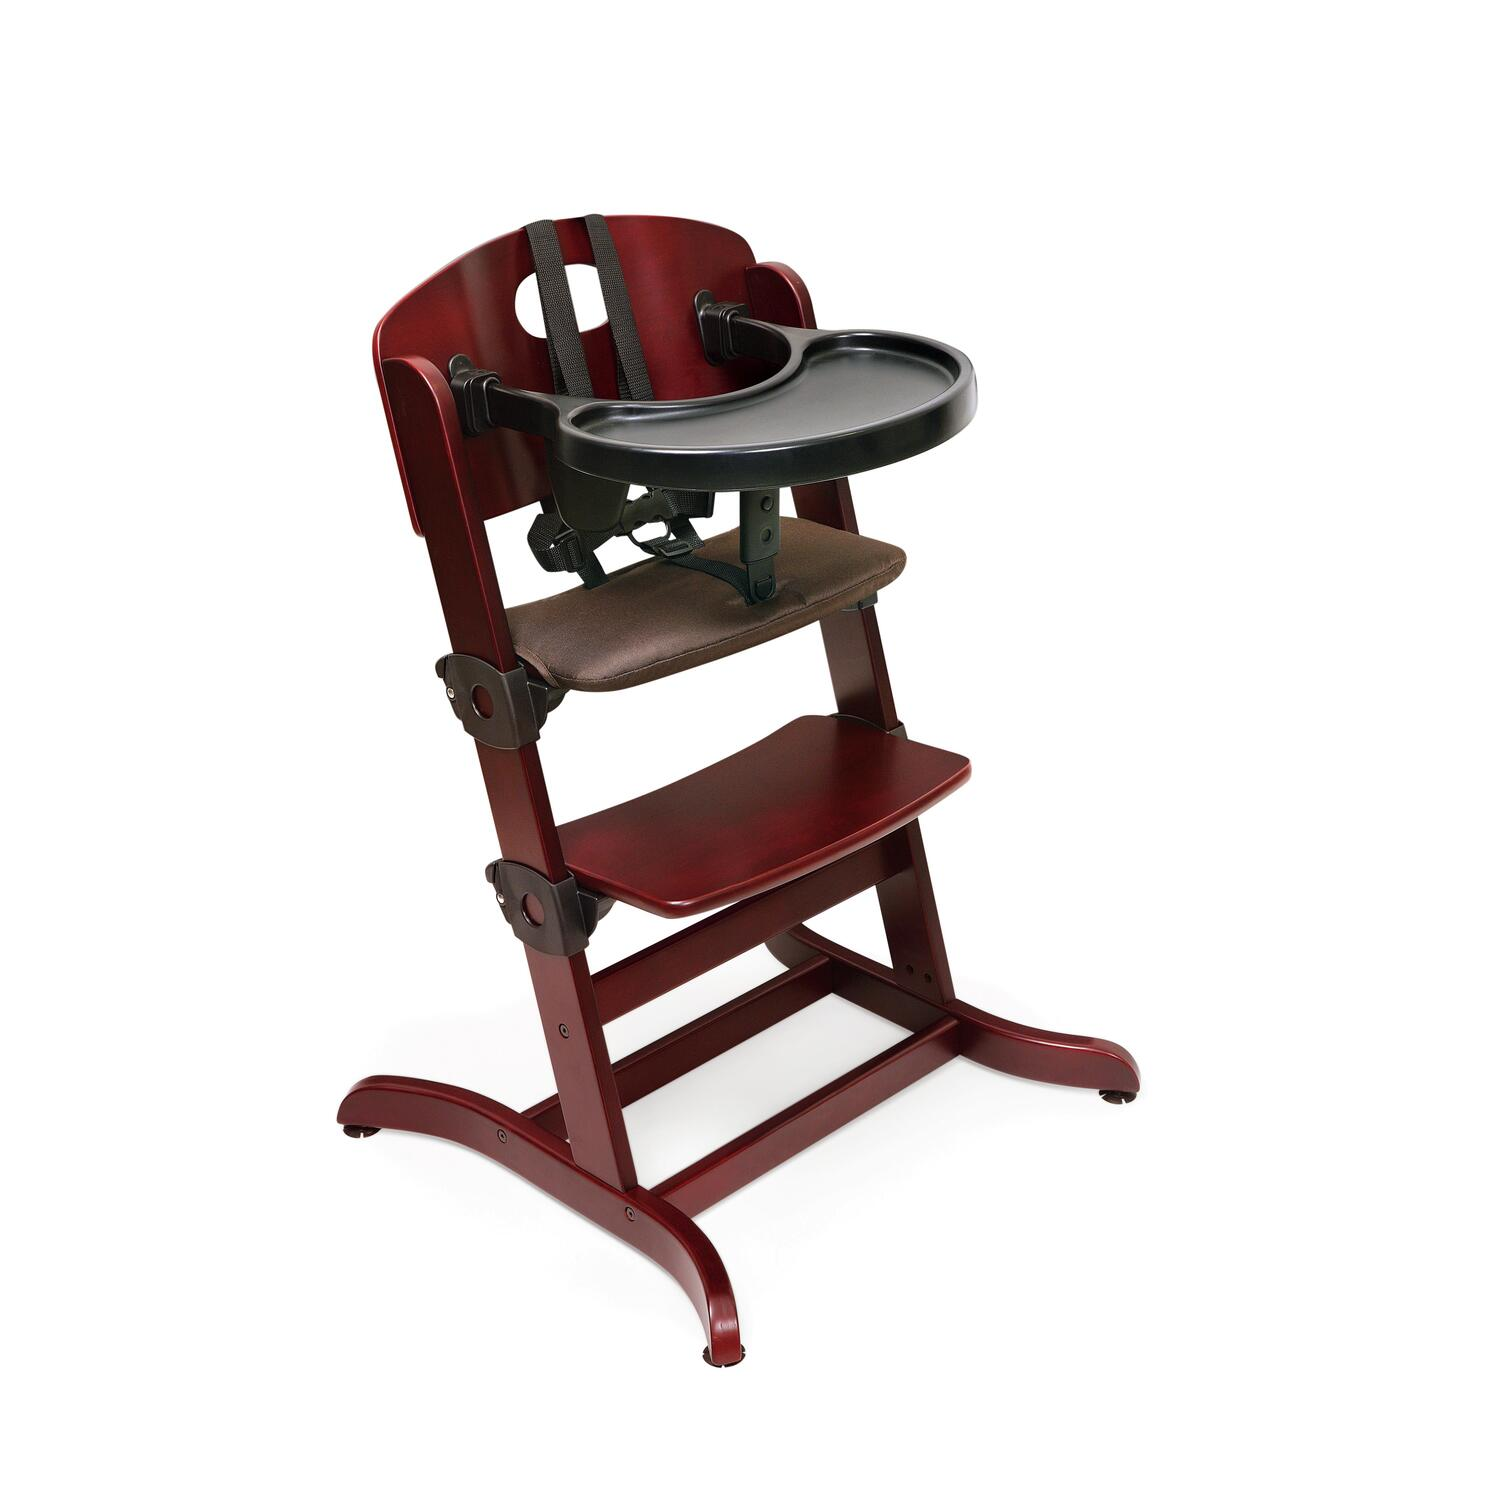 Badger High Chair Badger Basket Evolve Wood High Chair With Tray By Oj